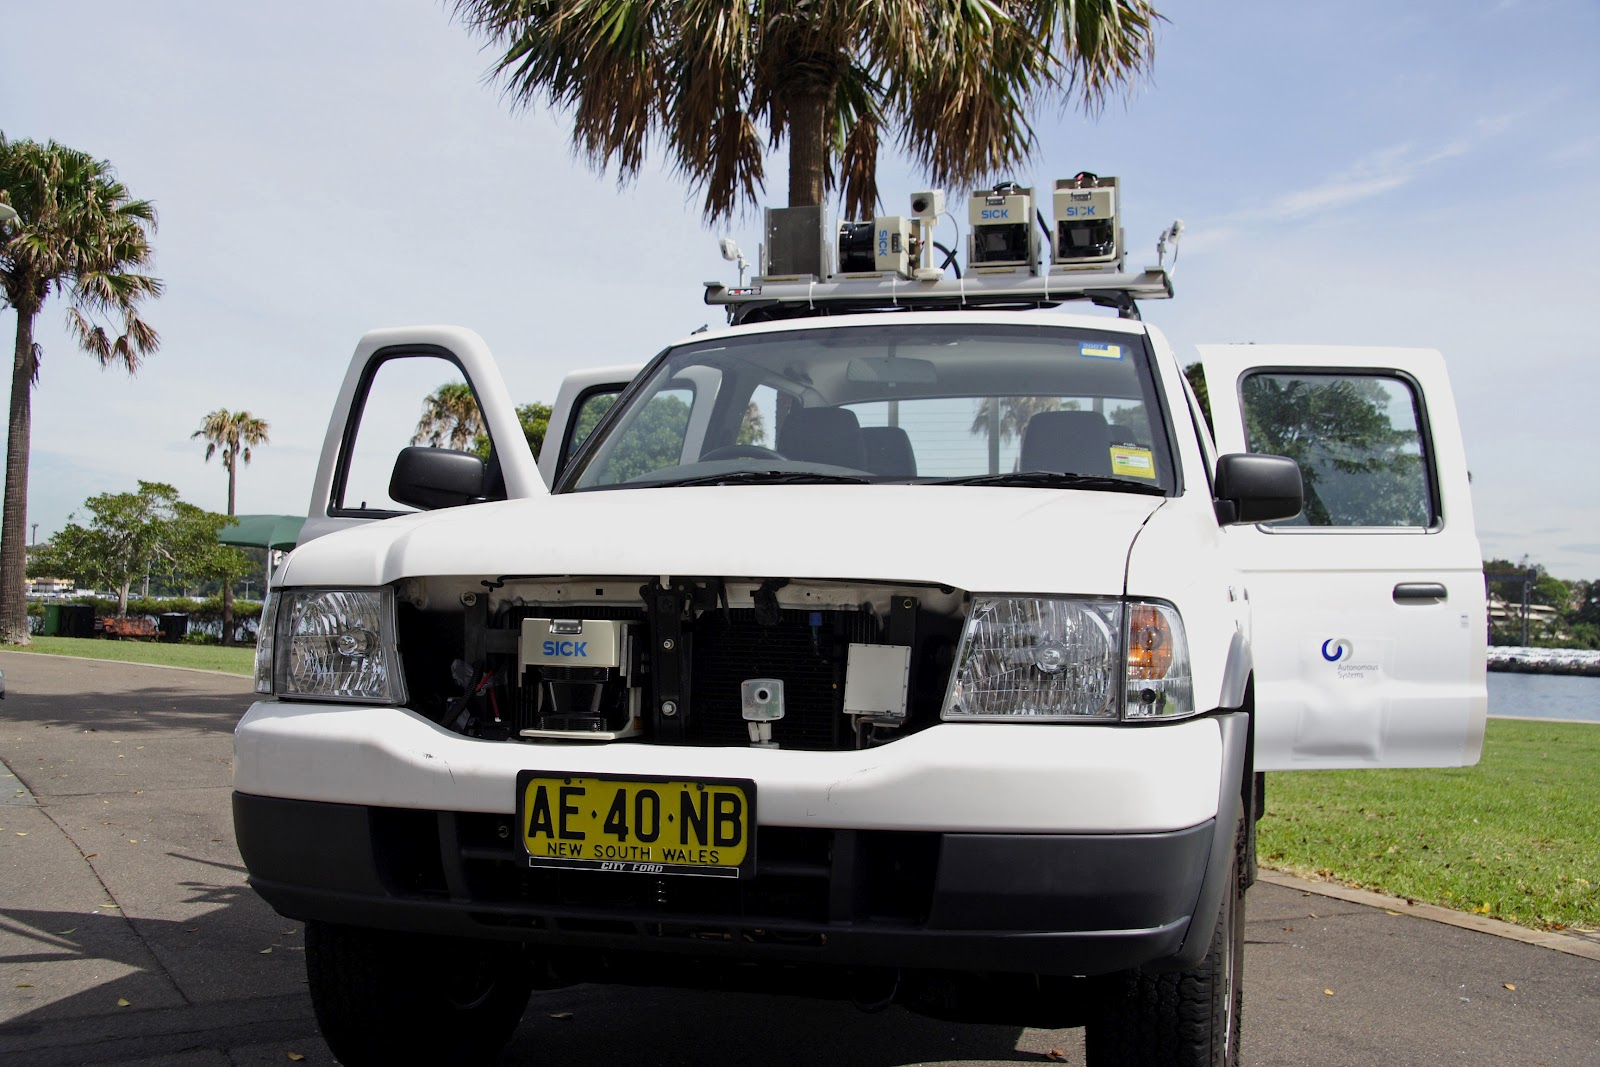 CRUISE vehicle with SICK sensors for autonomous vehicle research